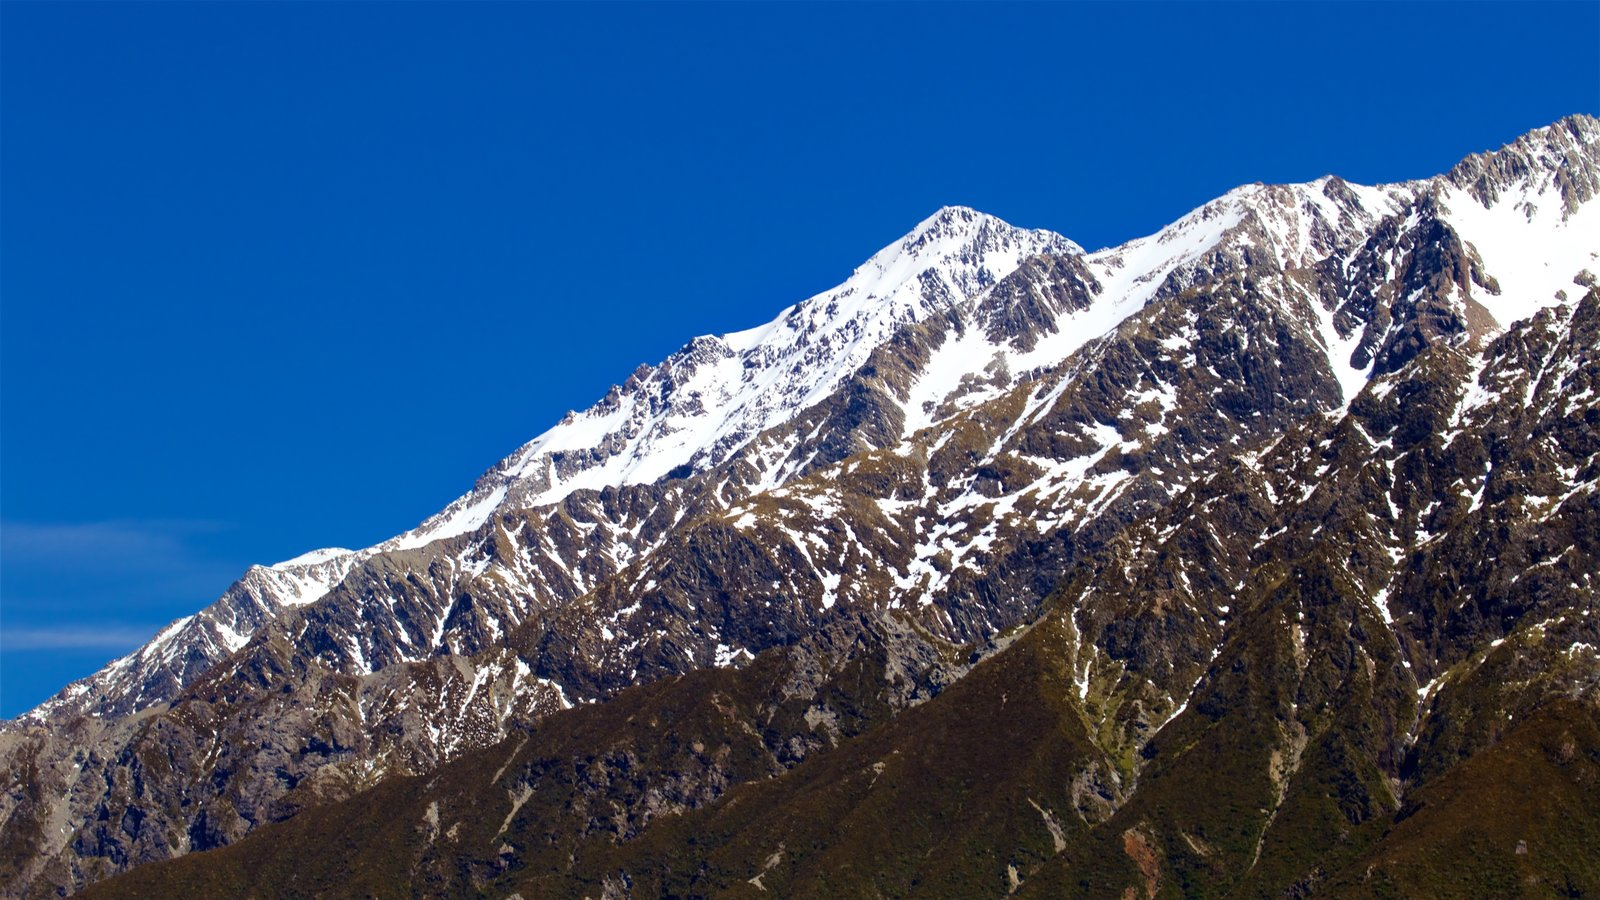 Mount Cook National Park which includes mountains and snow